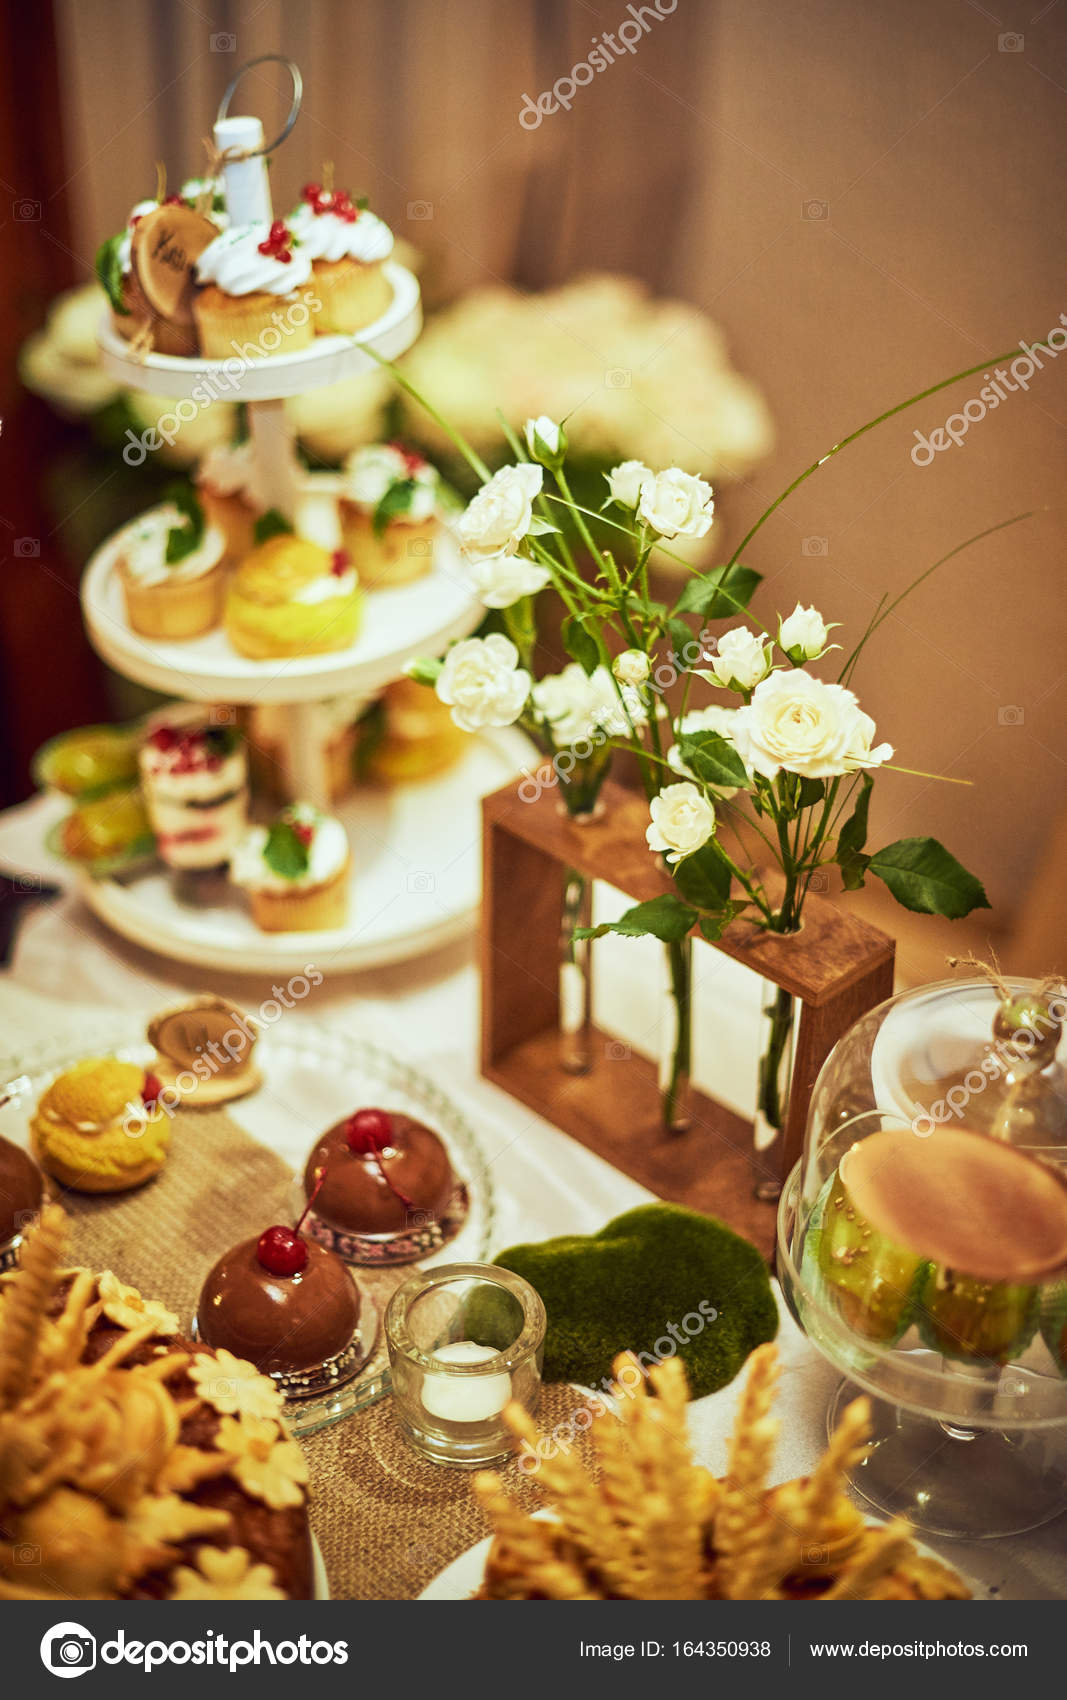 Wedding Reception Candy Bar Dessert Table Stock Photo Vitalii